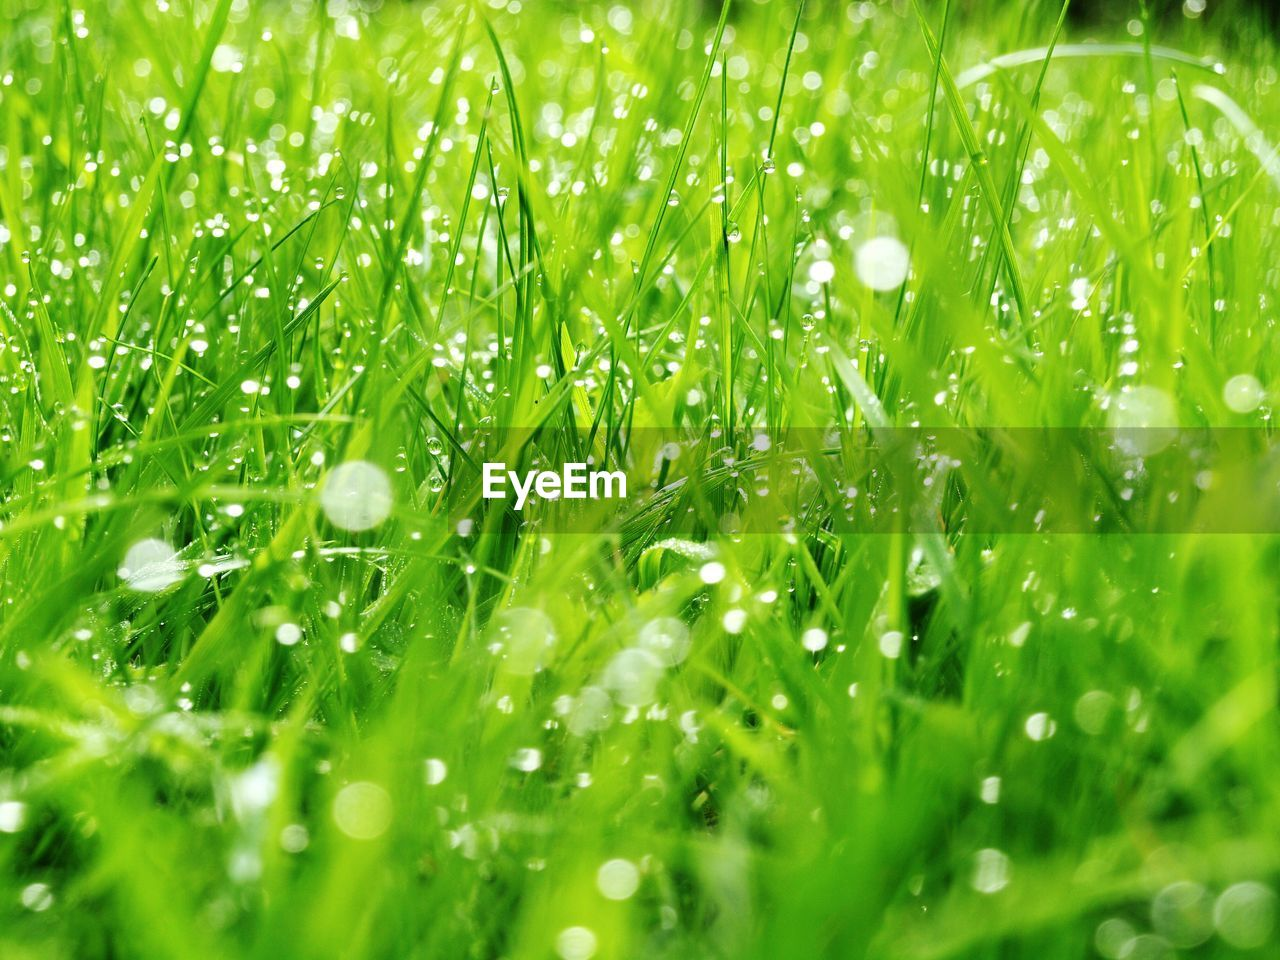 green color, drop, wet, plant, water, selective focus, growth, full frame, beauty in nature, freshness, close-up, nature, backgrounds, grass, no people, blade of grass, plant part, dew, leaf, rain, outdoors, raindrop, purity